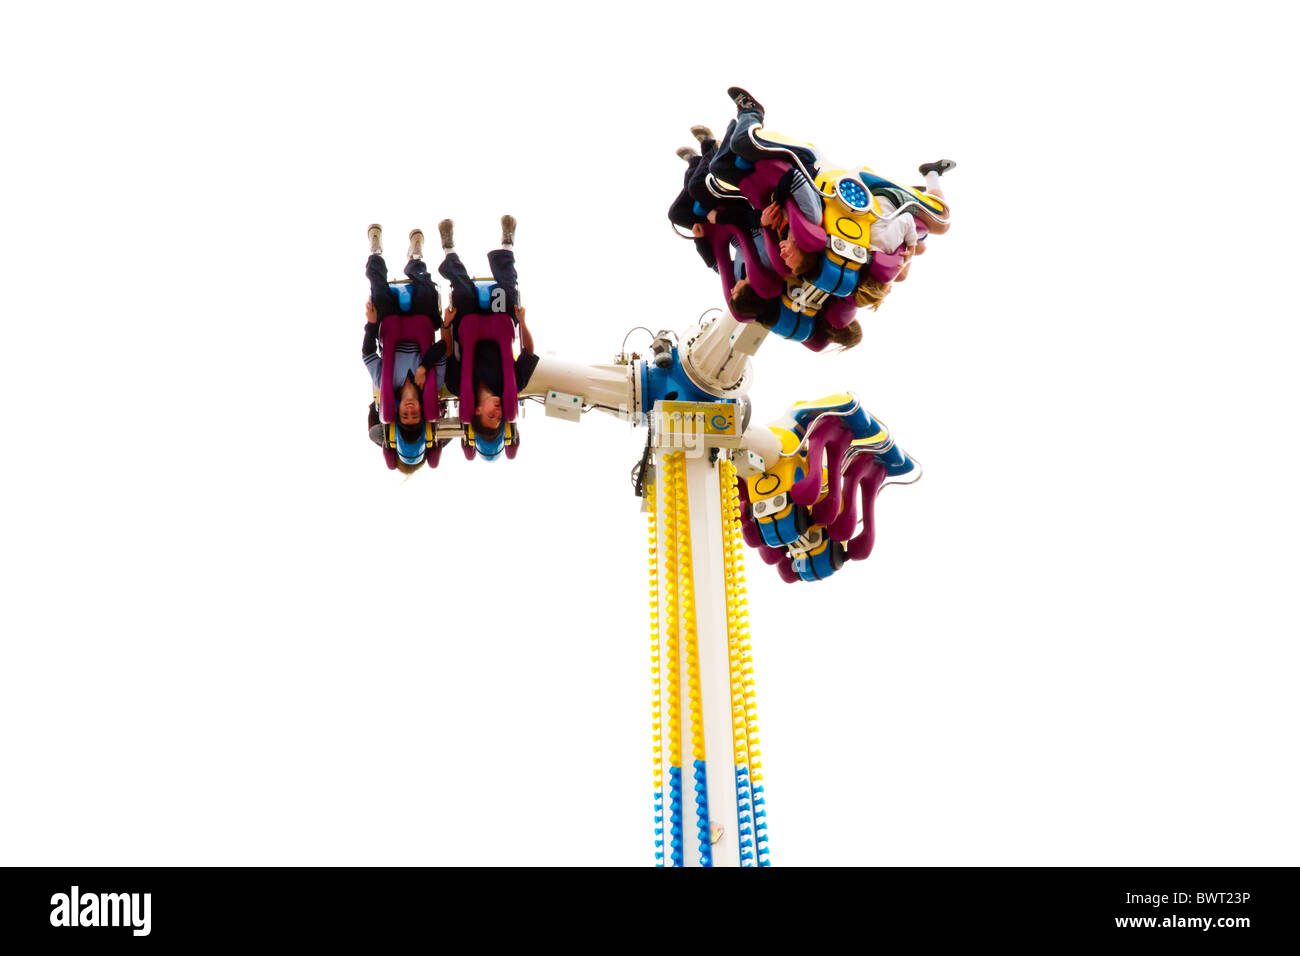 Amusement ride that turns people upside down - Stock Image